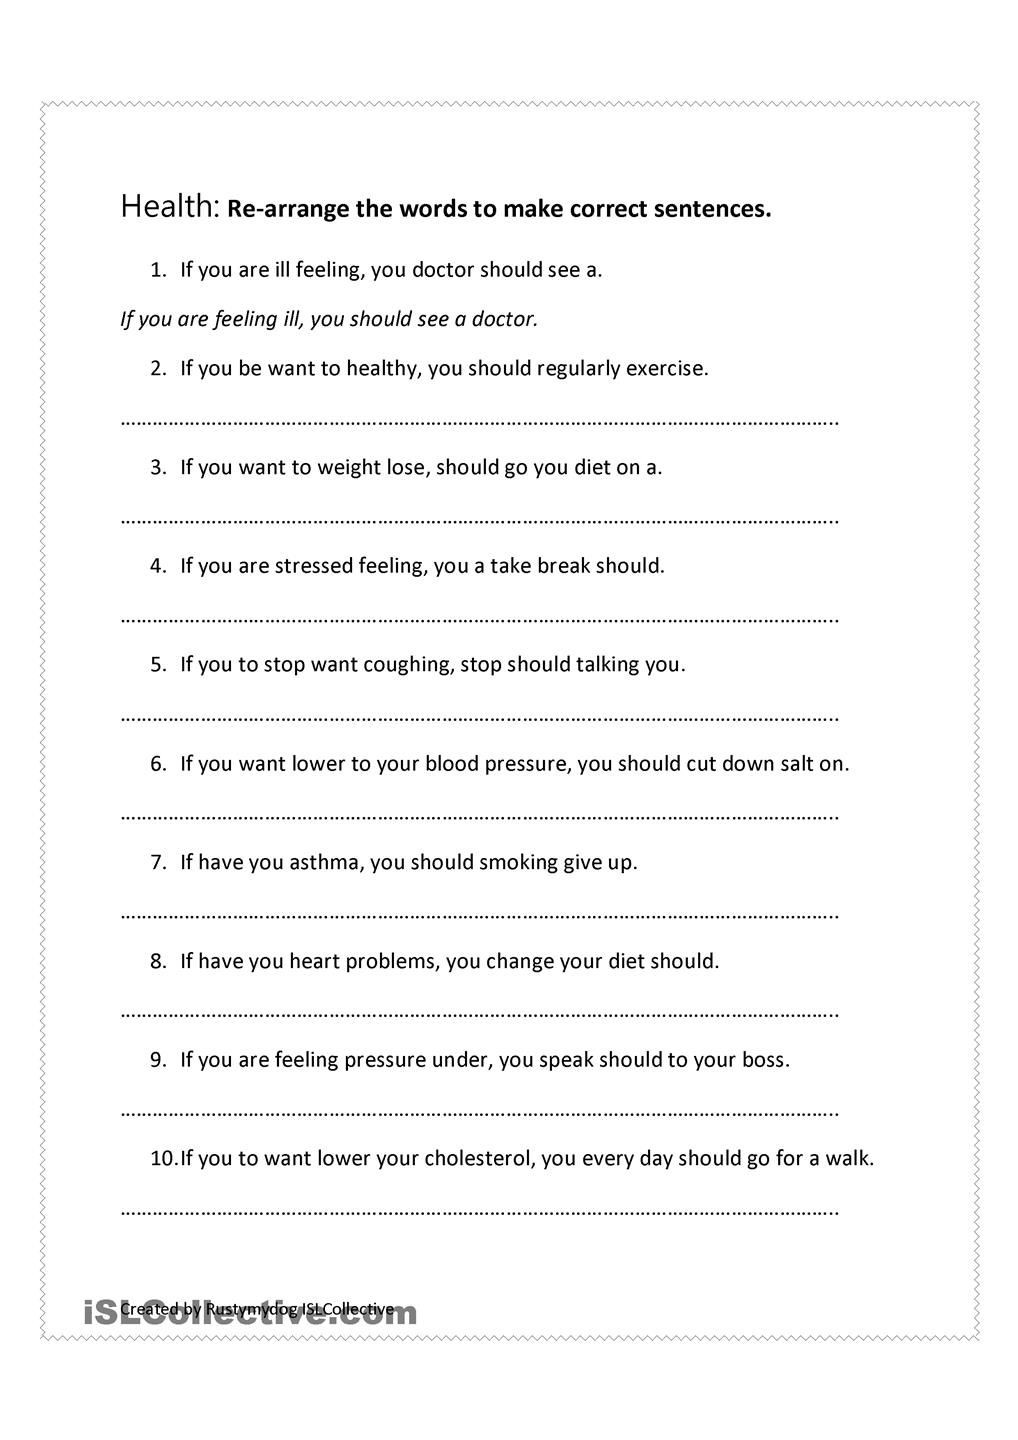 Sentence Correction Worksheets 2nd Grade Health Advice Jumbled Sentences Conditionals